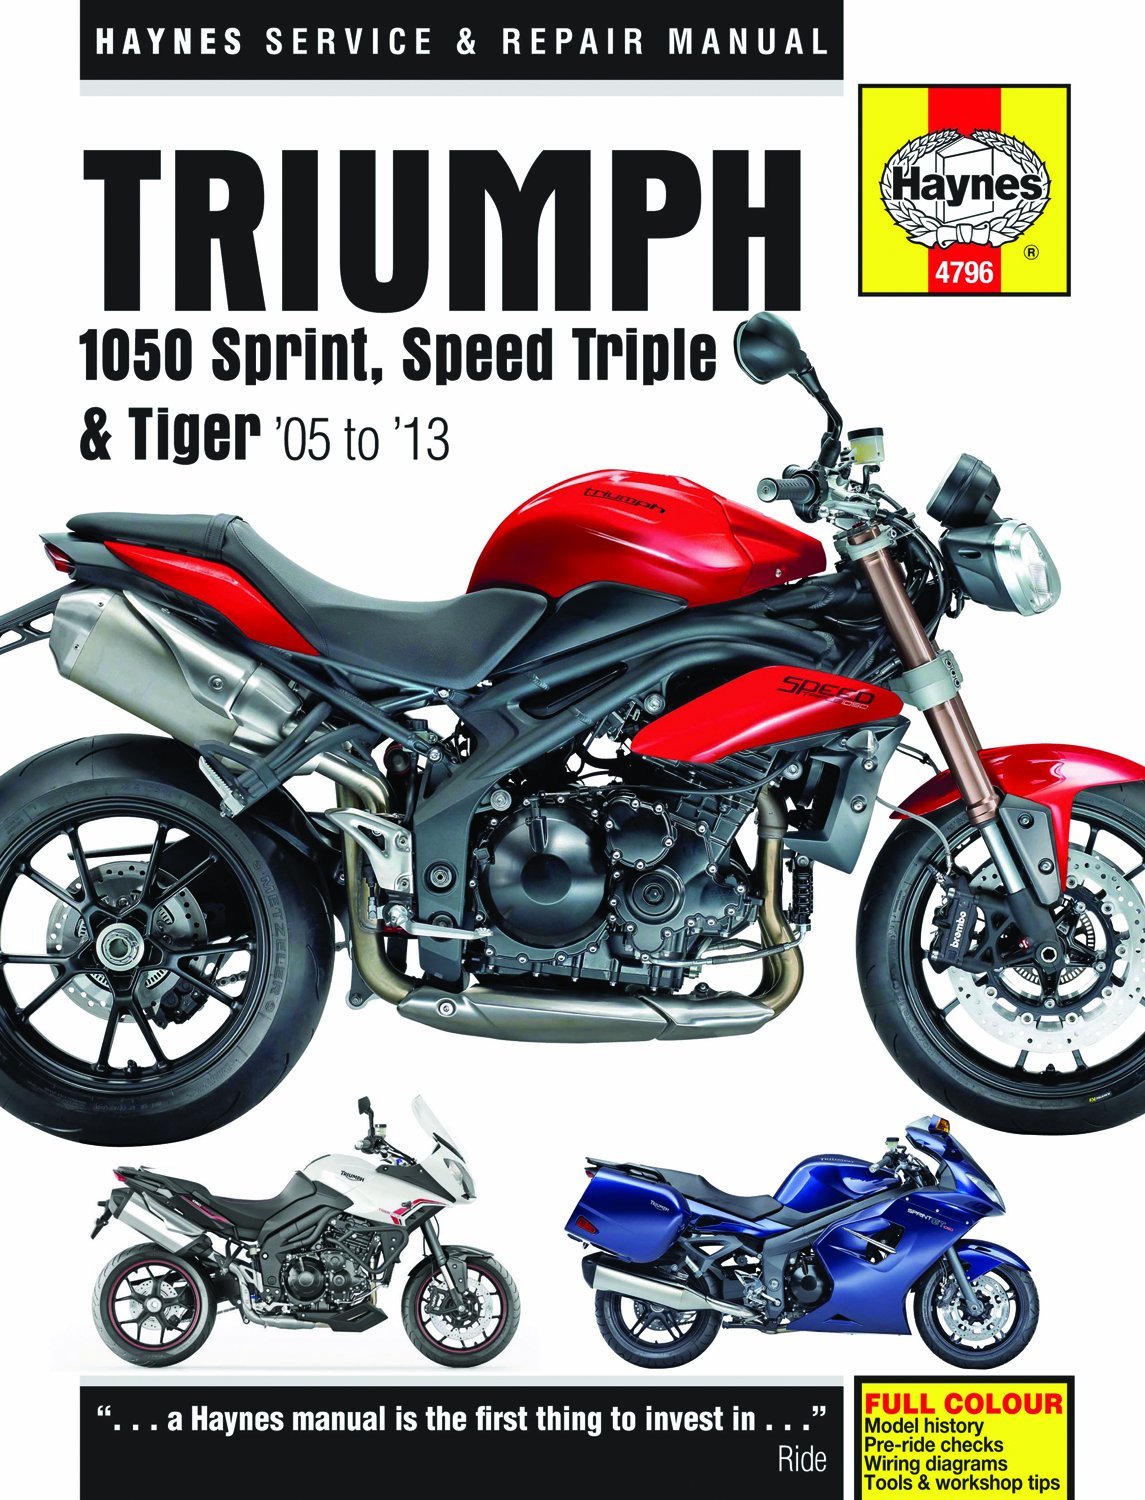 Triumph 1050 Sprint St Speed Triple Tiger Service And Repair Honda Vtr 1000 Wiring Diagram Manual 2005 To 2013 Haynes Manuals Matthew Coombs